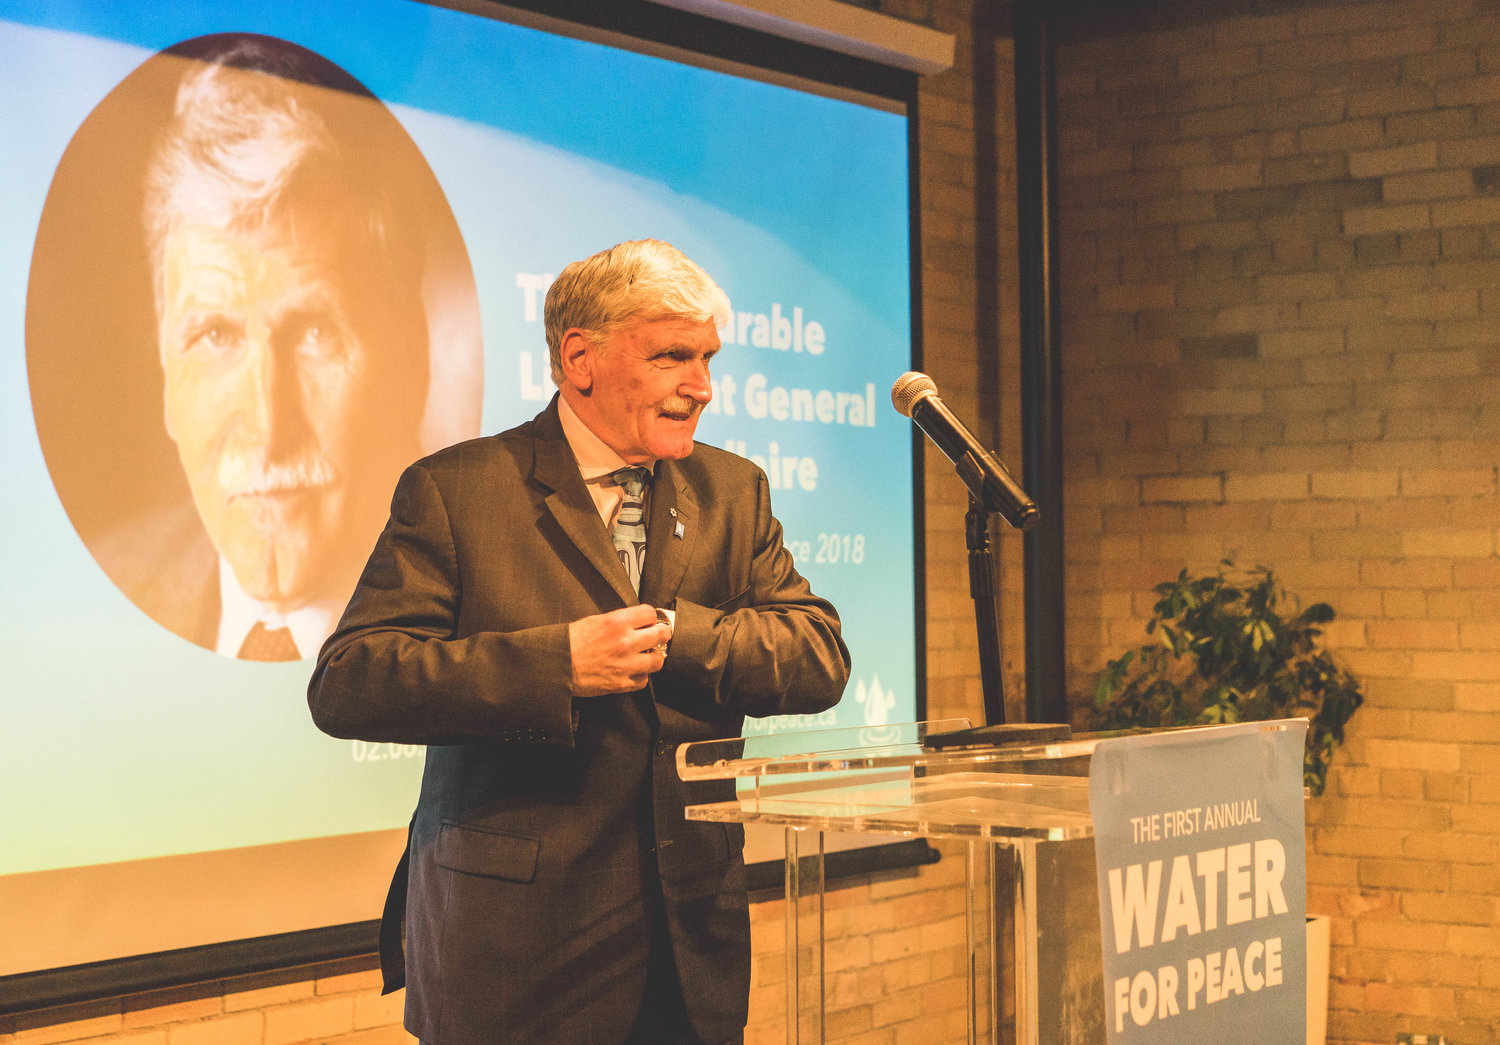 General Dallaire inspires Canadians to lead on global water crisis at first annual Water for Peace